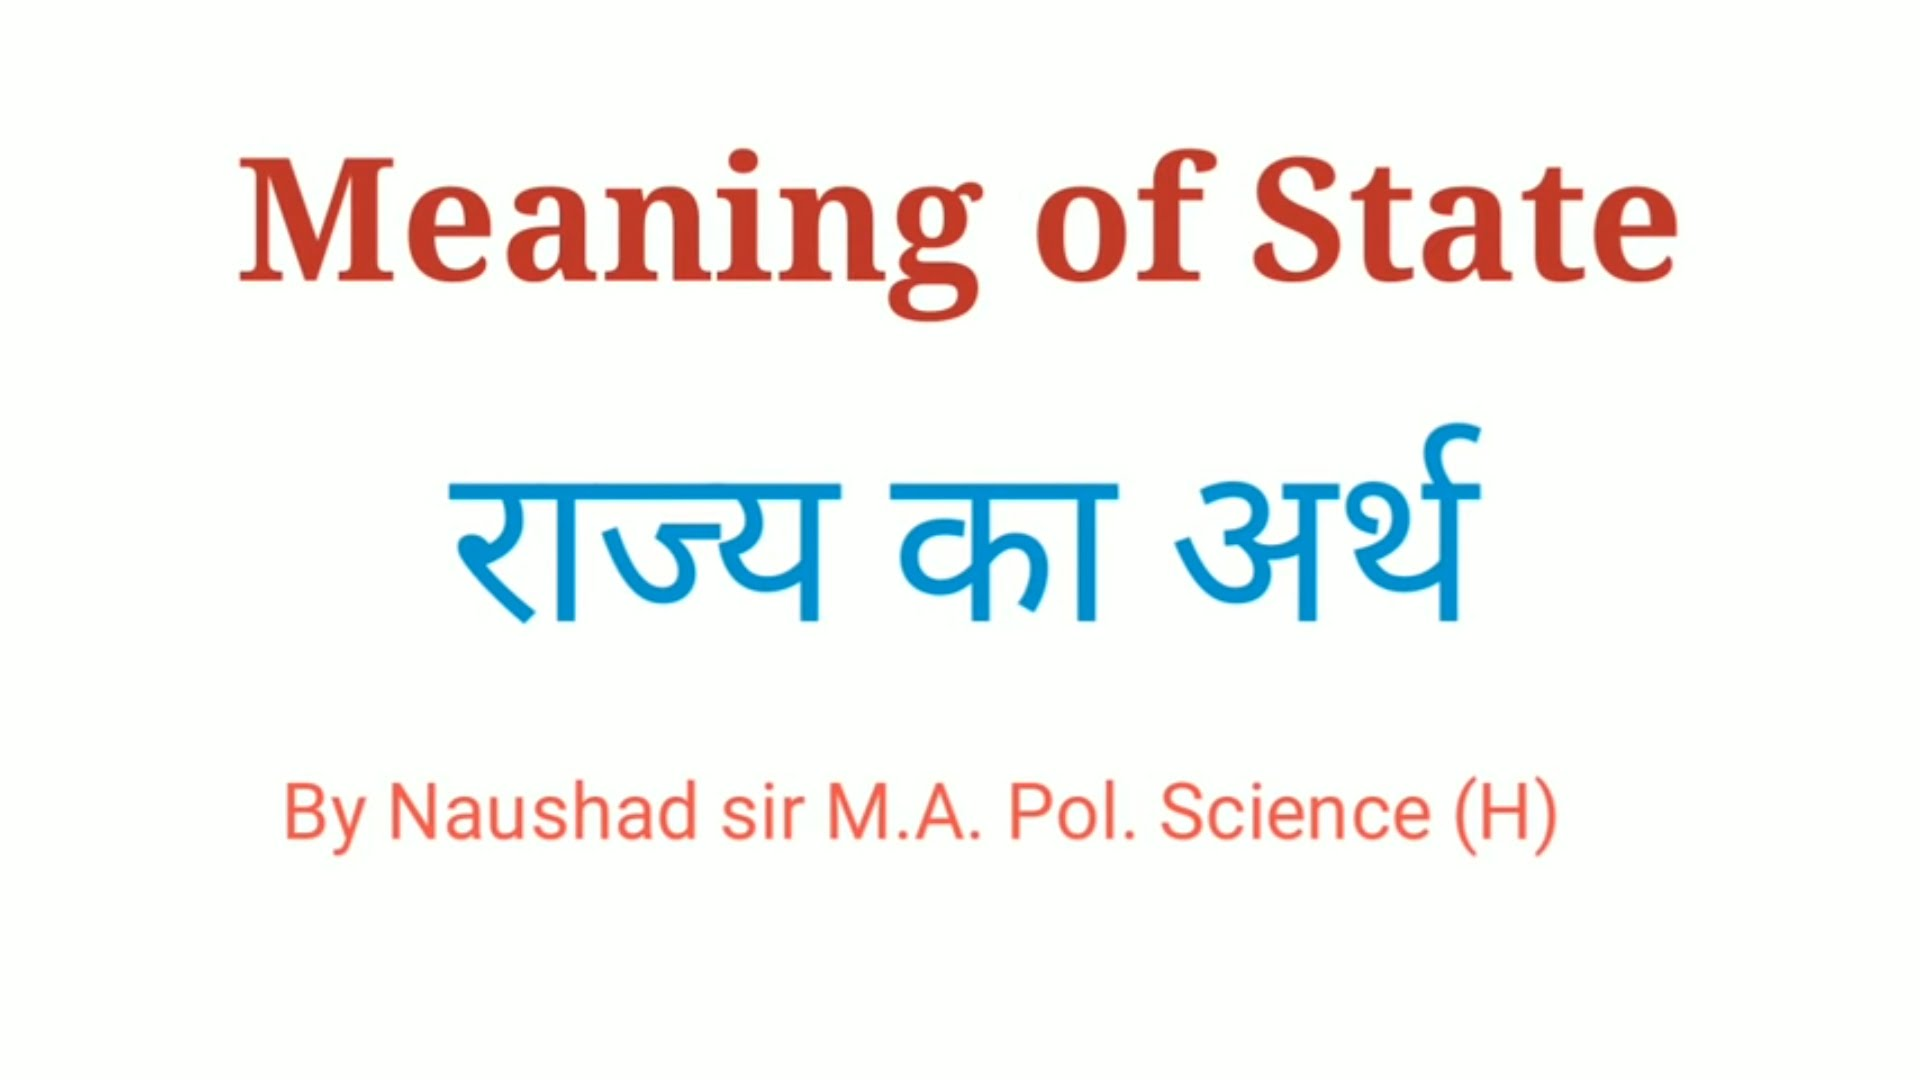 Meaning of State राज्य का अर्थ